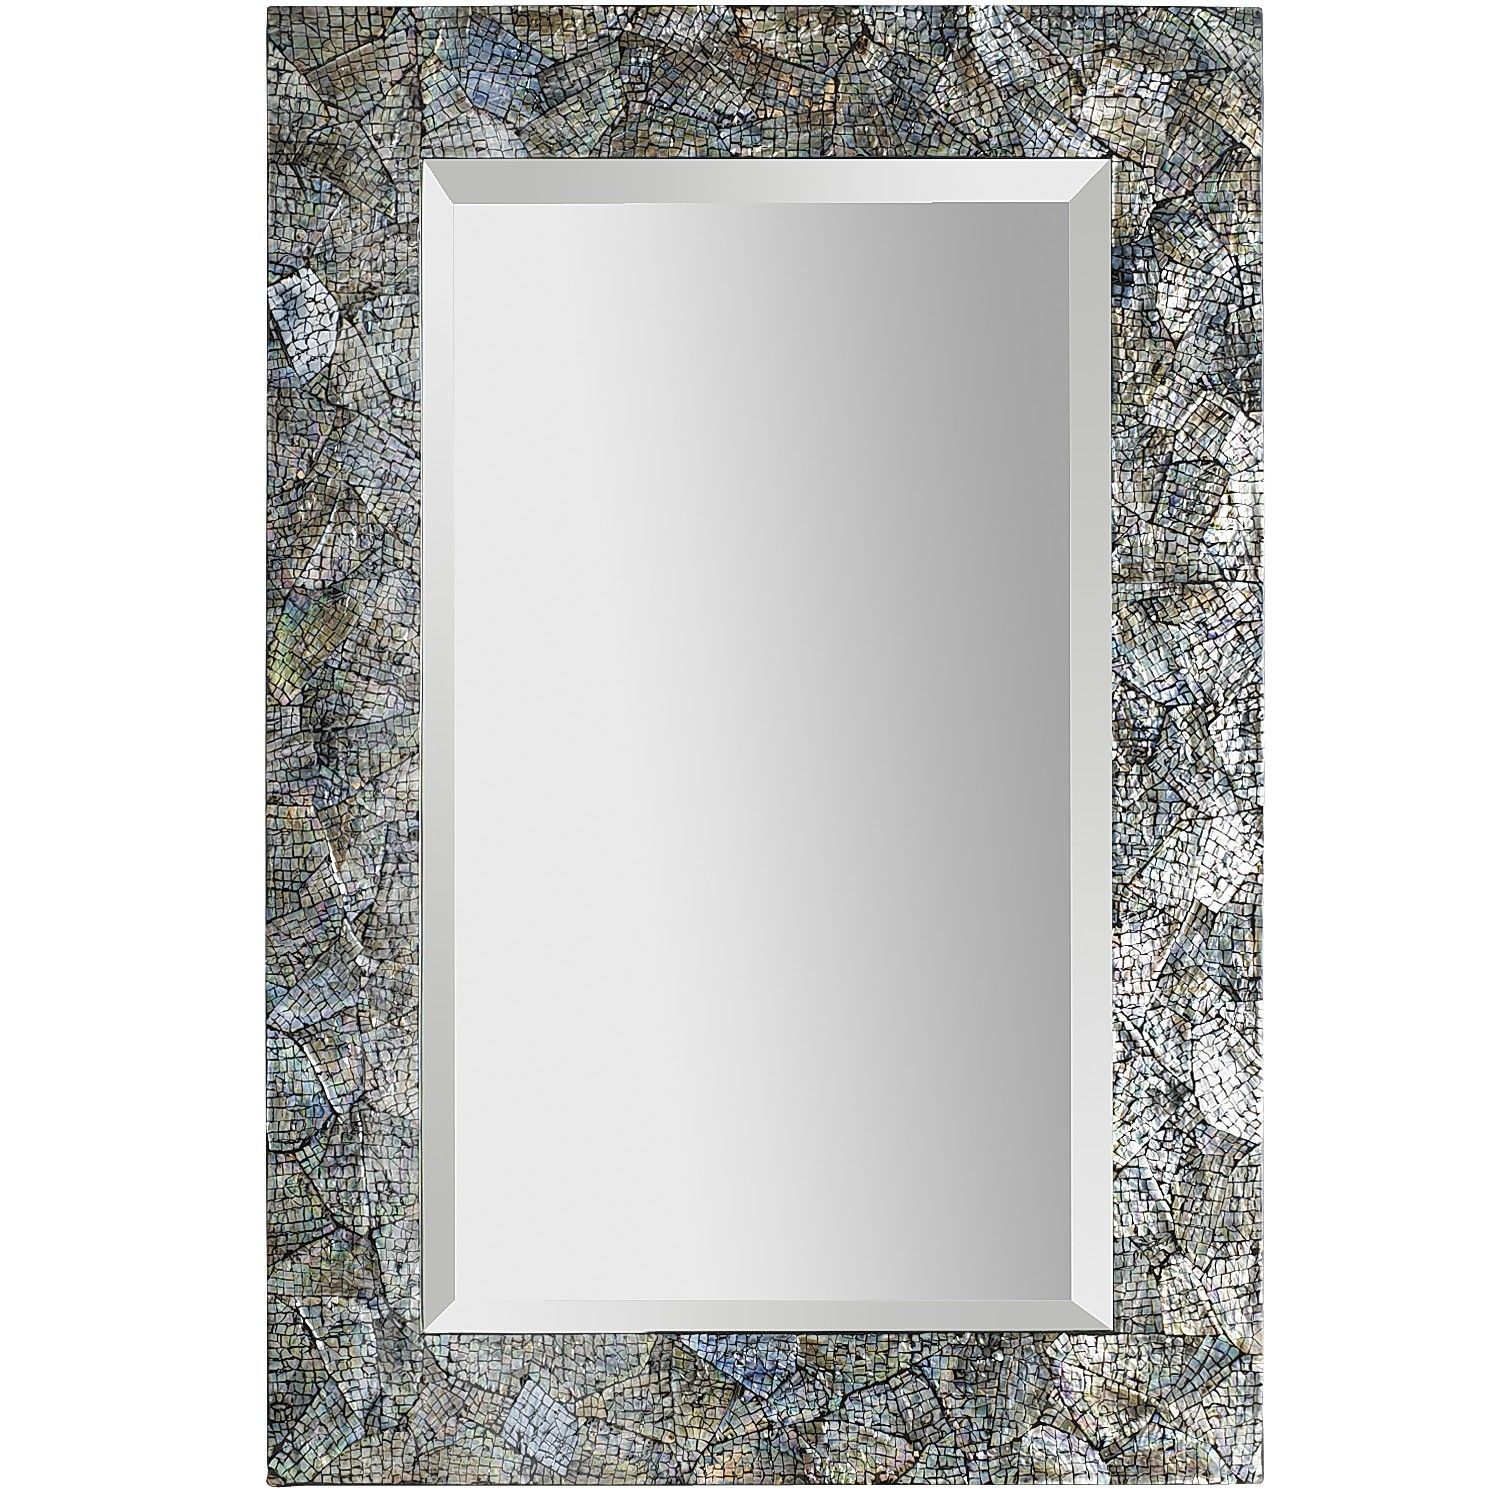 Crackled Mother Of Pearl Mirror 32x48 Pier 1 Imports